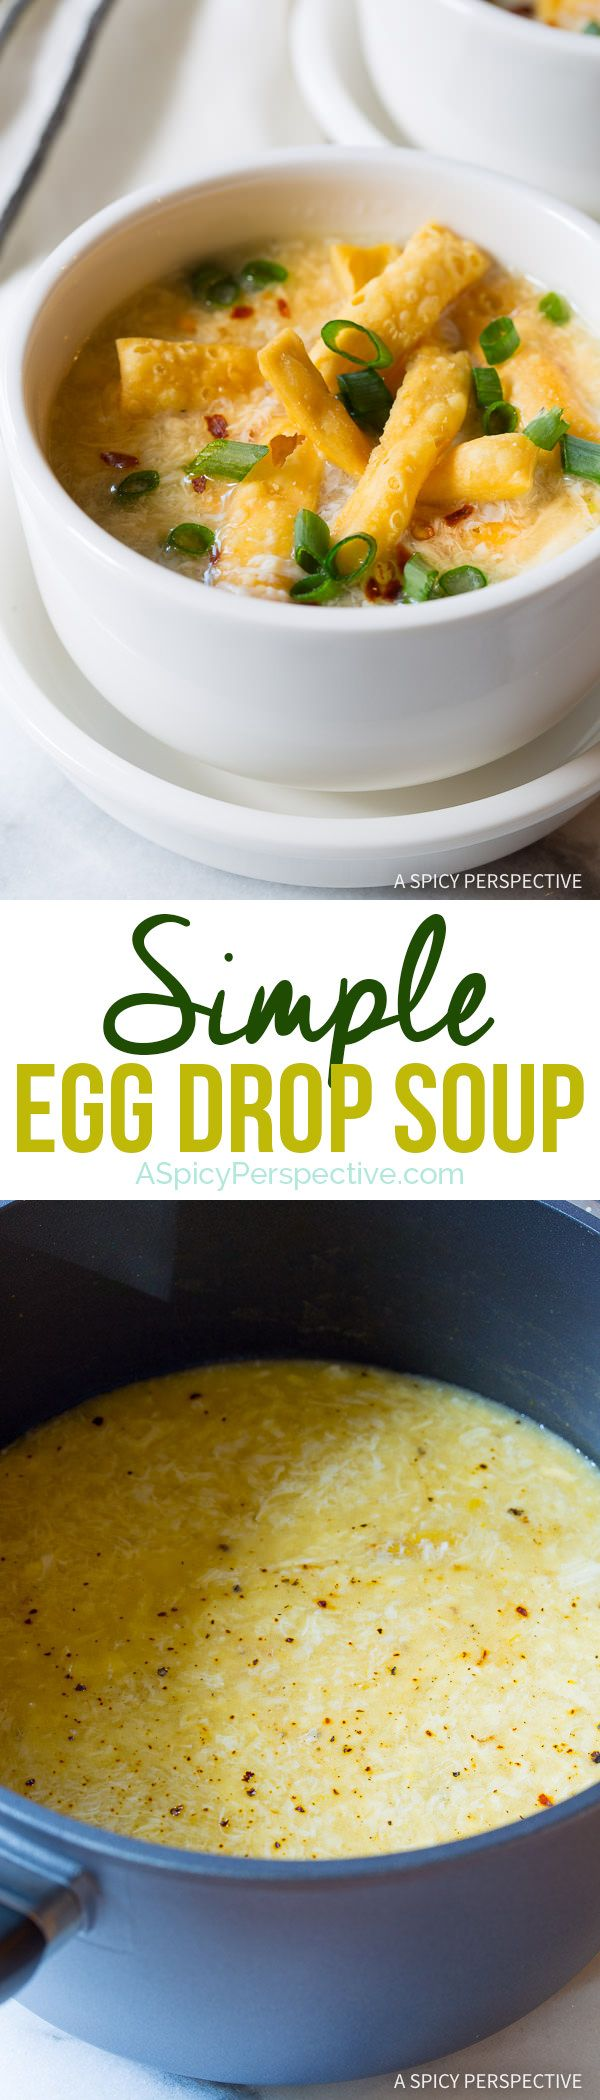 The Best Egg Drop Soup Recipe | ASpicyPerspective.com